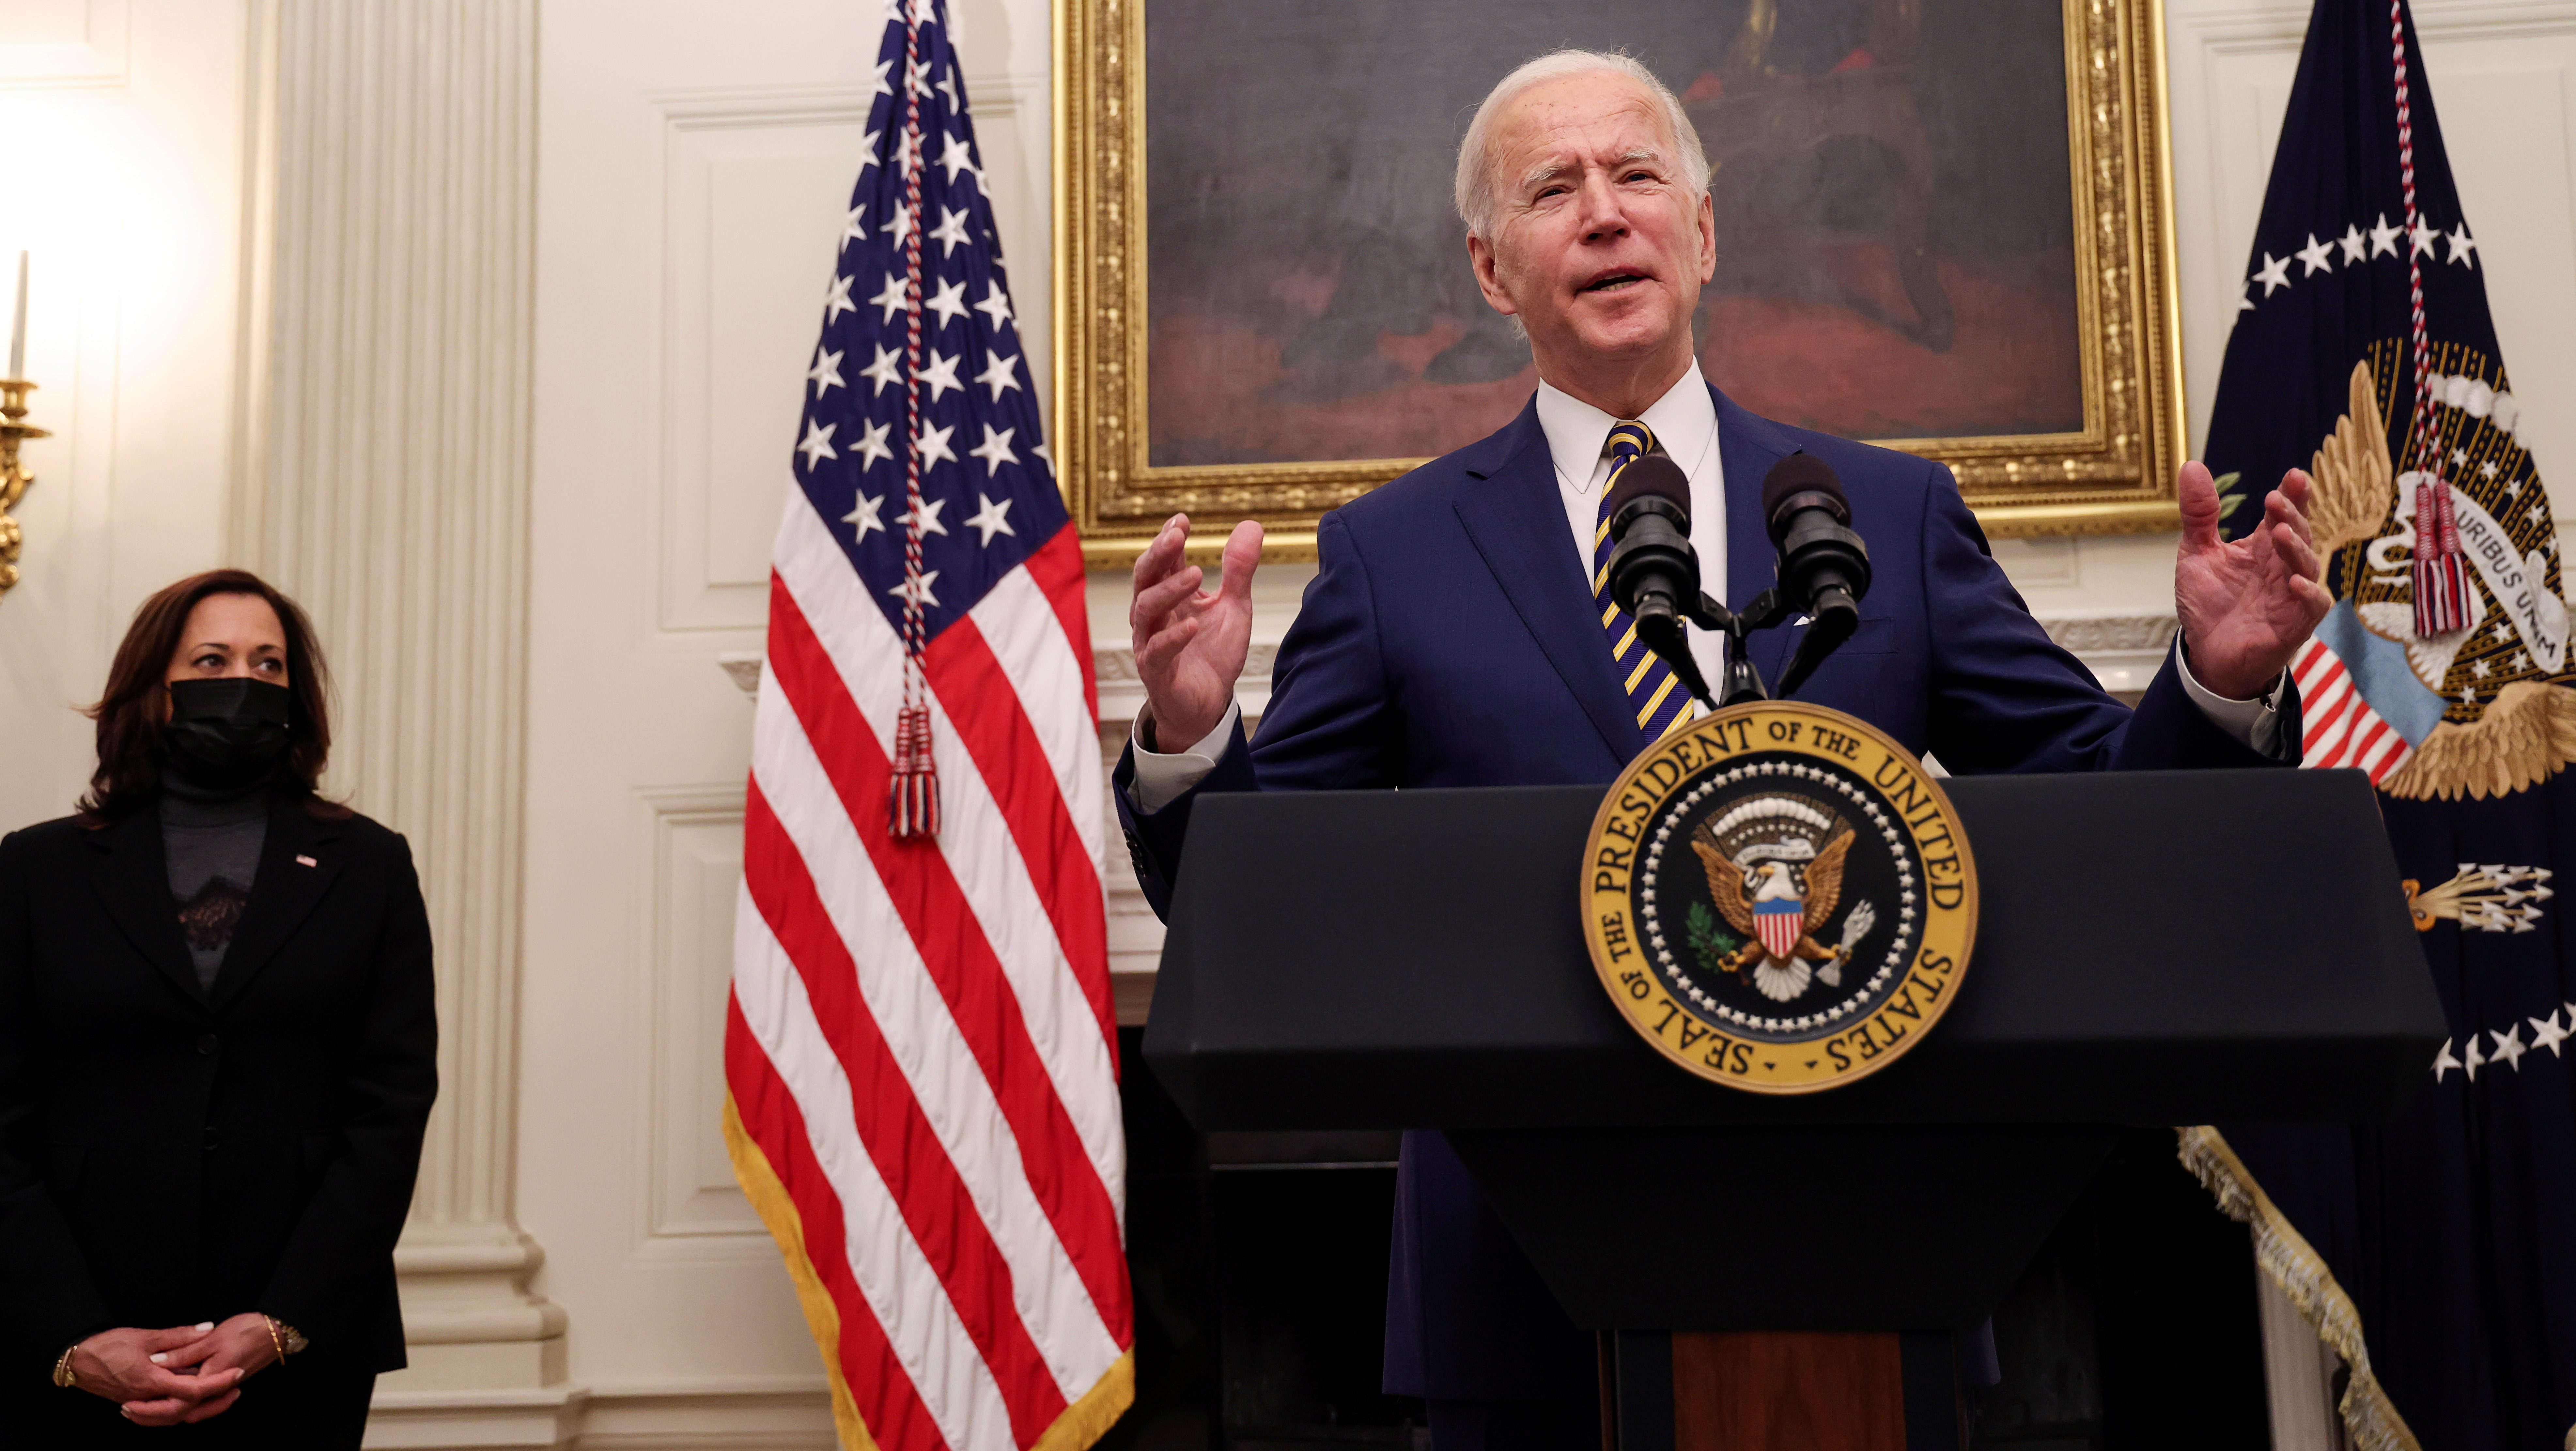 U.S. President Joe Biden speaks about his administration's plans to respond to the economic crisis as Vice President Kamala Harris listens during a coronavirus disease (COVID-19) response event in the State Dining Room at the White House in Washington, U.S., January 22, 2021. R